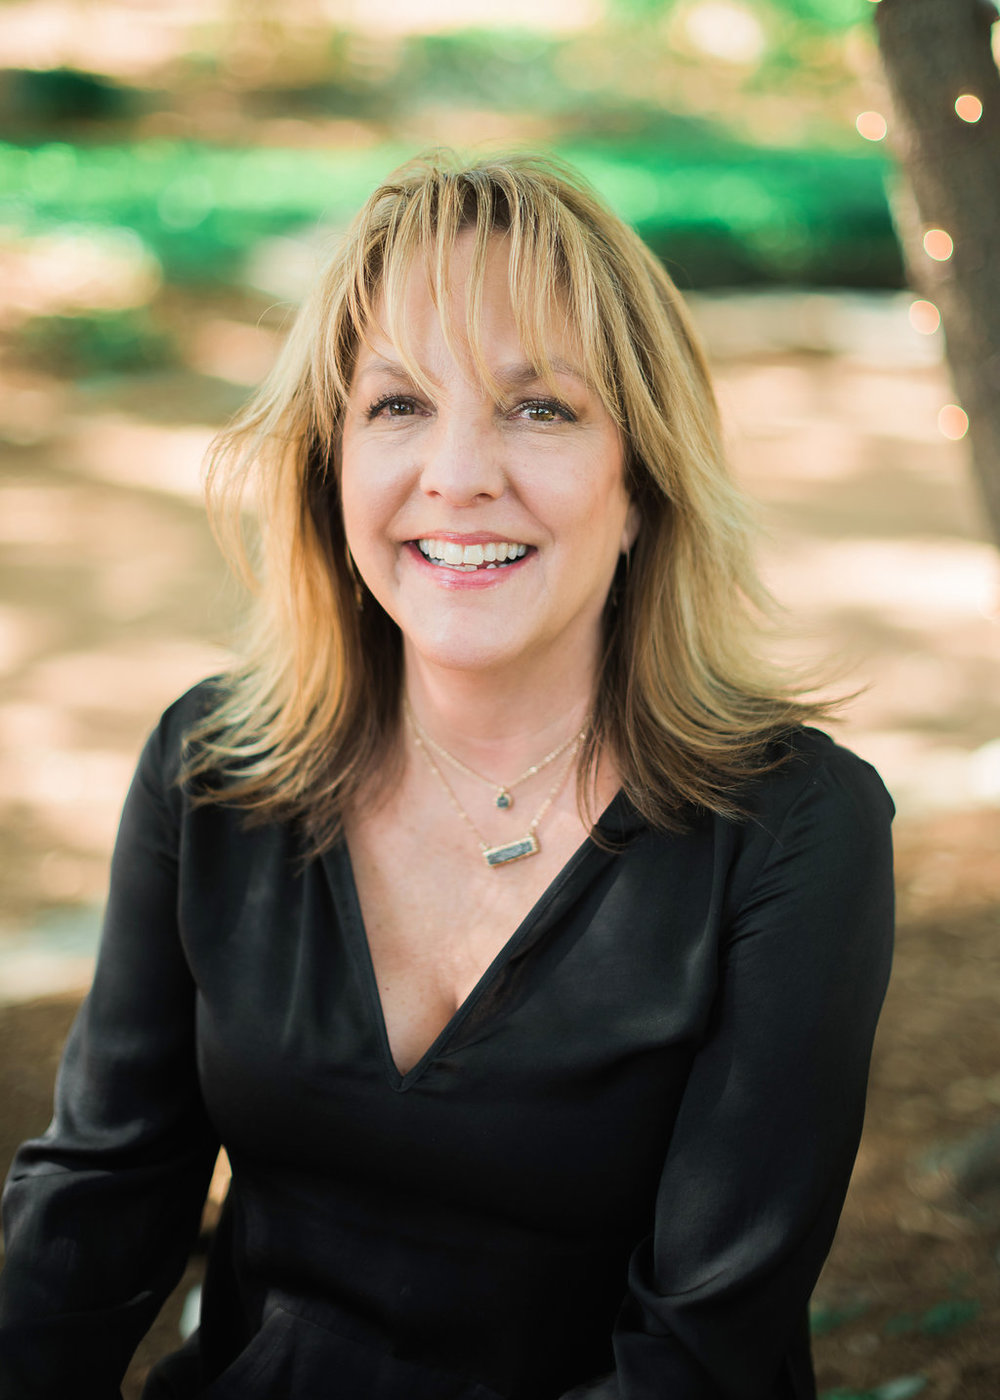 Jenny Neffendorf Realtor/Associate  (830) 456-3551   jenny@jennyneffendorf.com   Jenny has been in the real estate business since 1997 performing all types of real estate including sales and listings of HOMES,  ...Meet Jenny